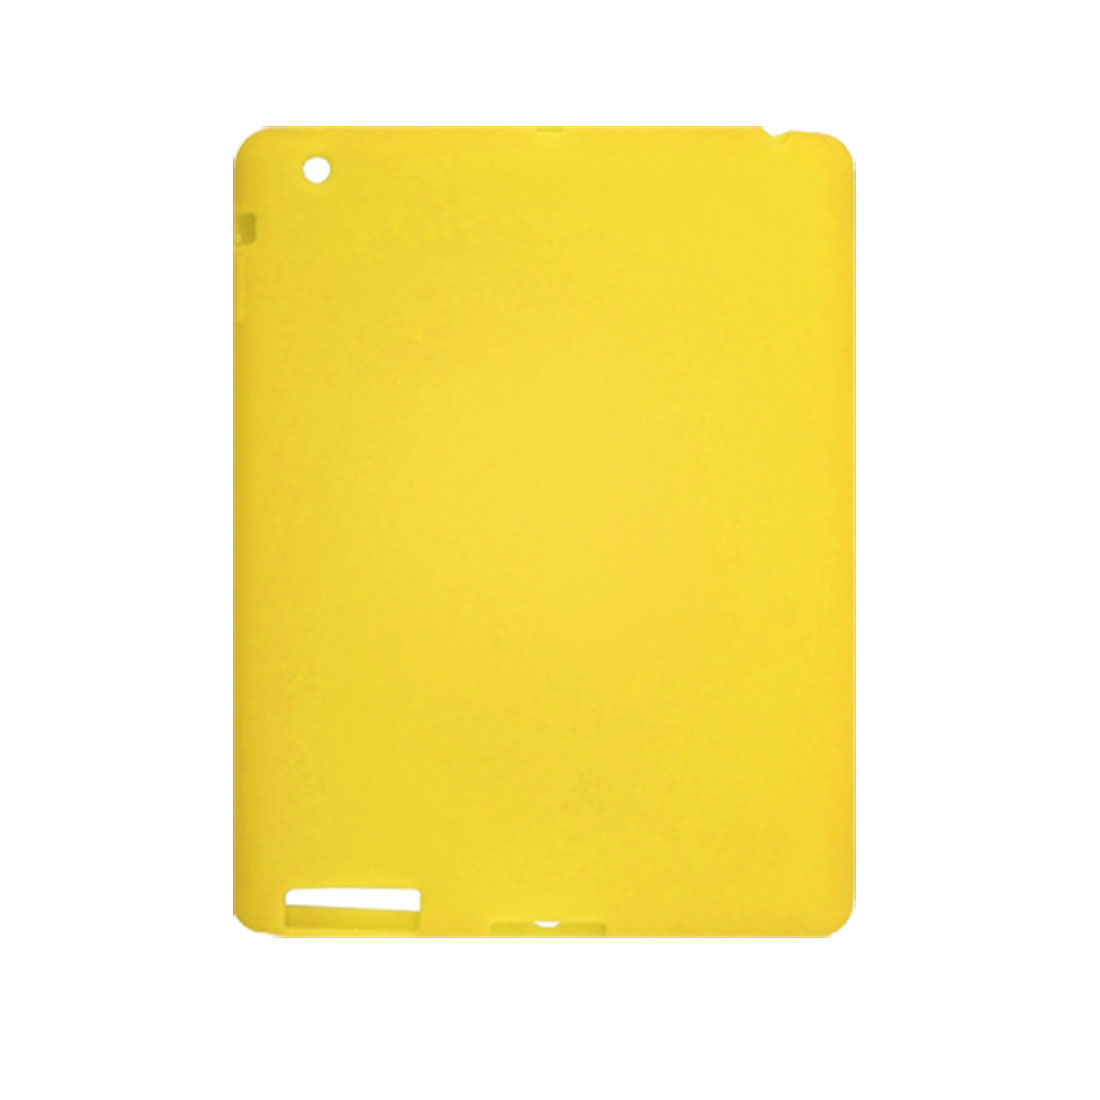 Silicone Yellow Protector Cover for Apple iPad 2G